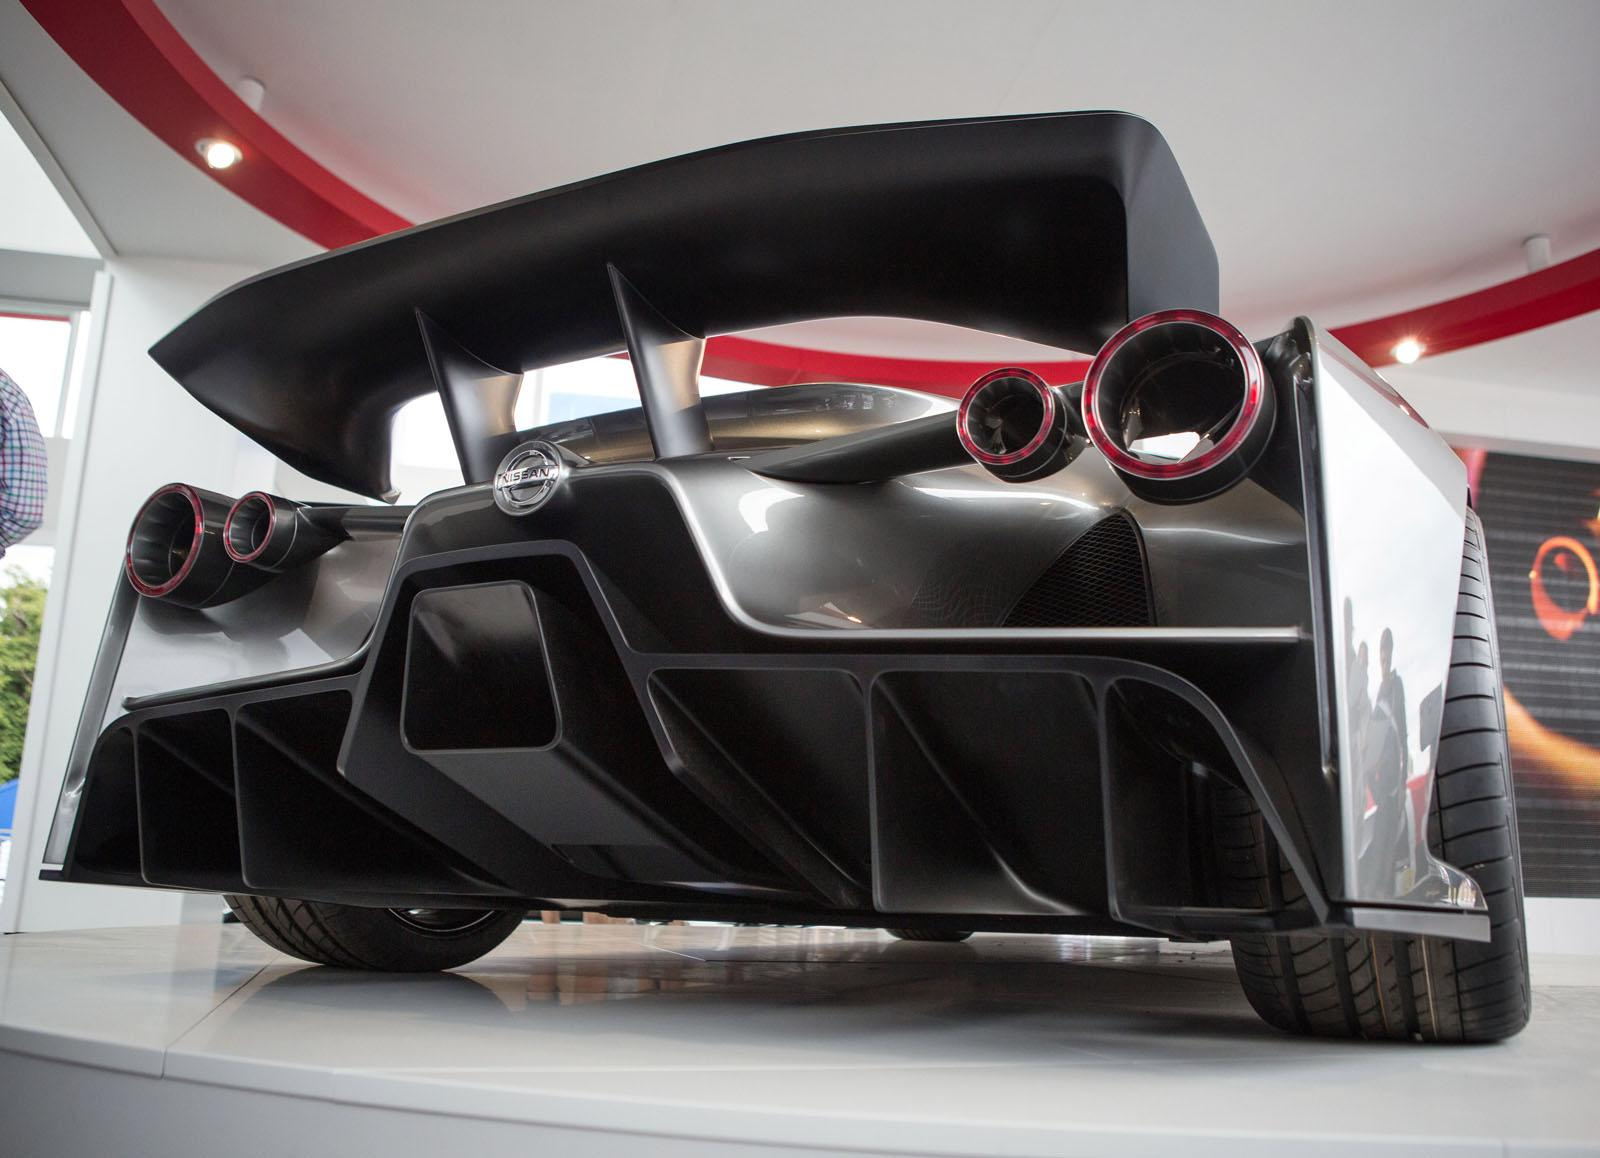 nissan concept 2020 vision gran turismo unwrapped at goodwood